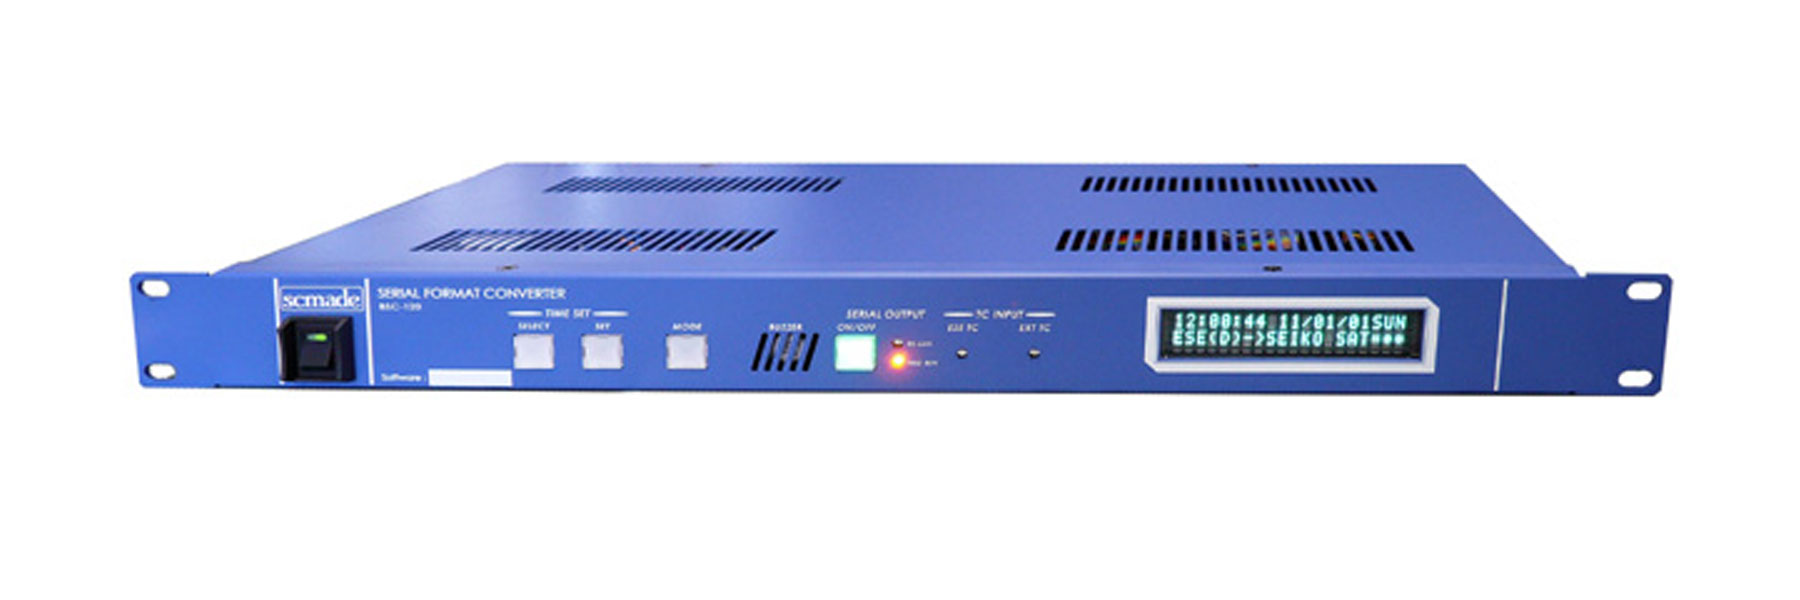 bsc-120_up640